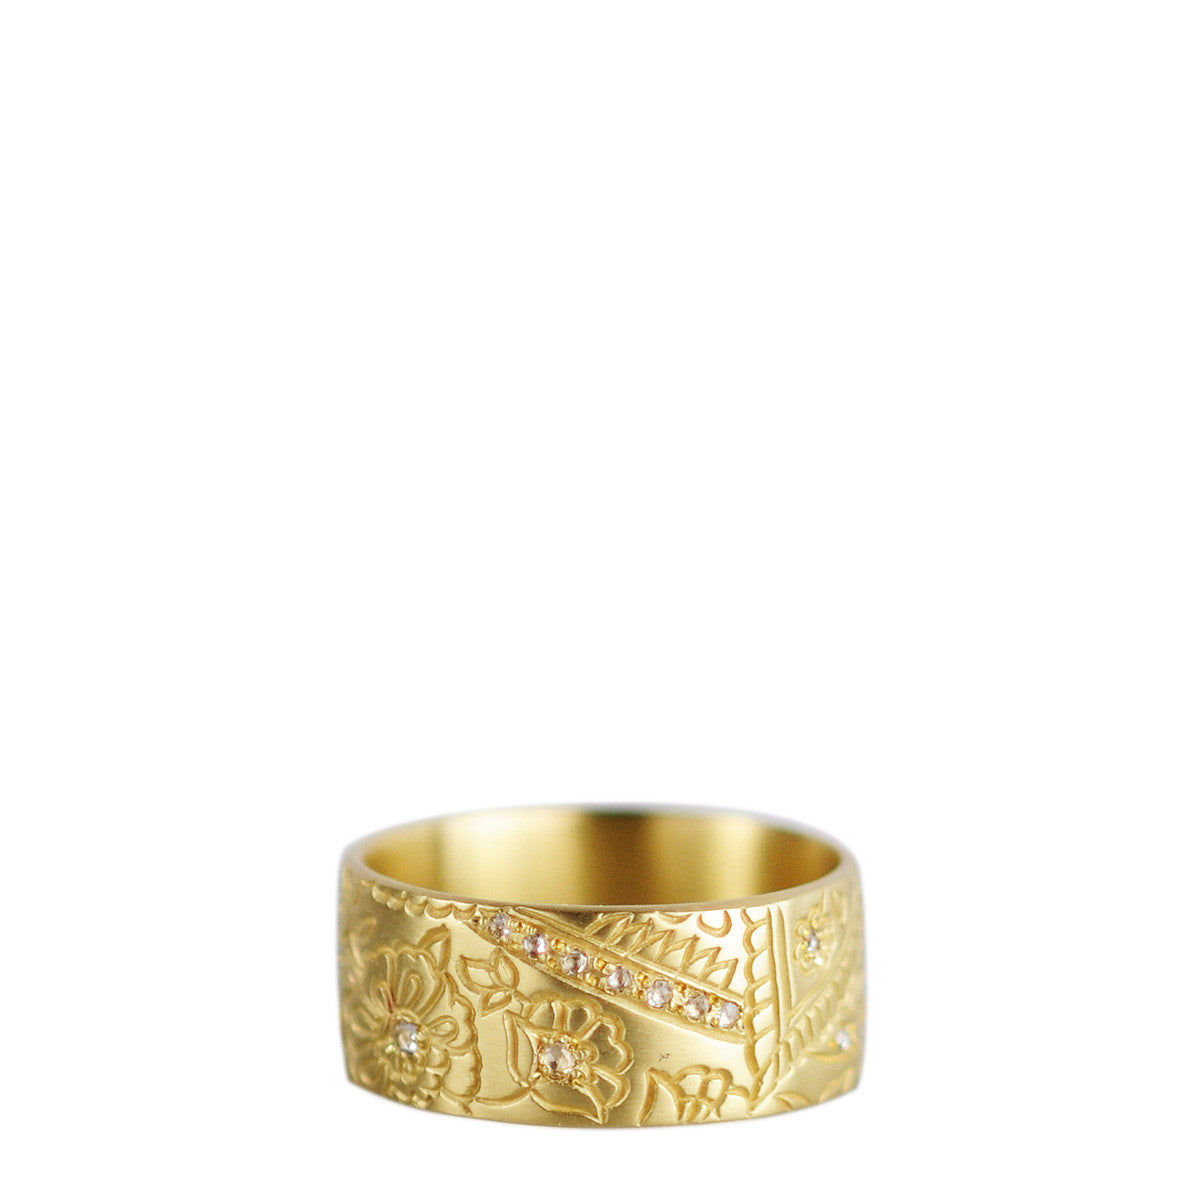 18K Gold 9mm Paisley Band with Diamonds